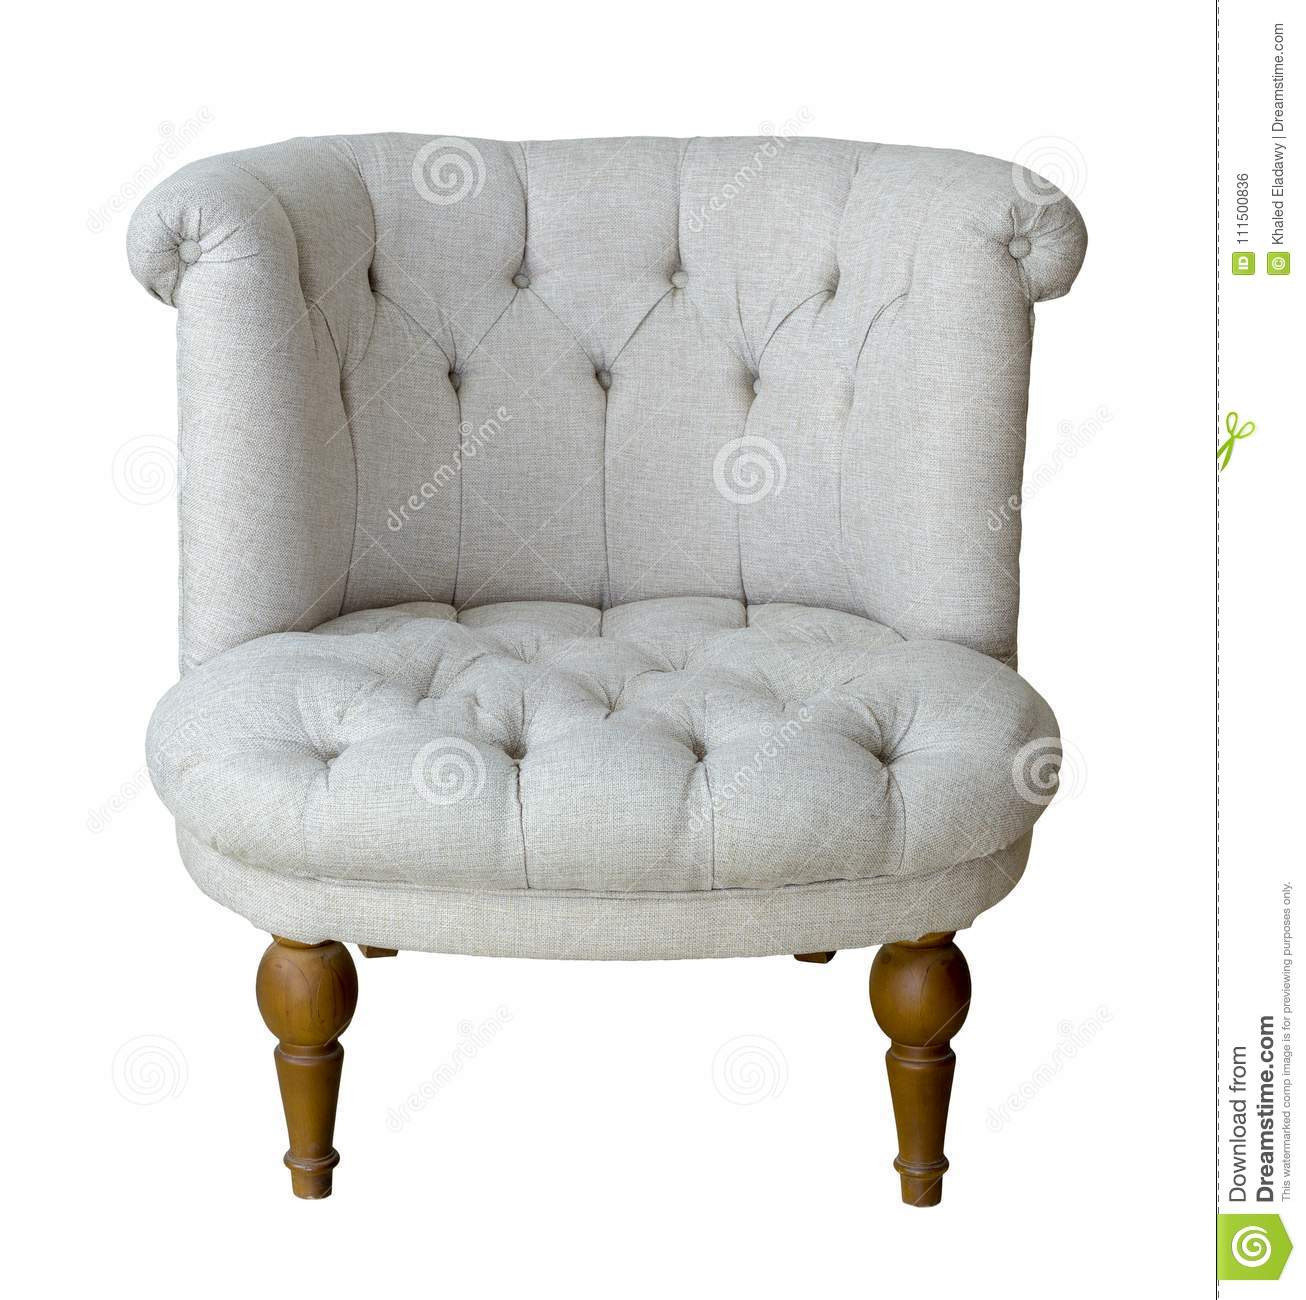 French Grey Tub Chair With Wooden Legs Isolated On White Background  Including Clipping Path